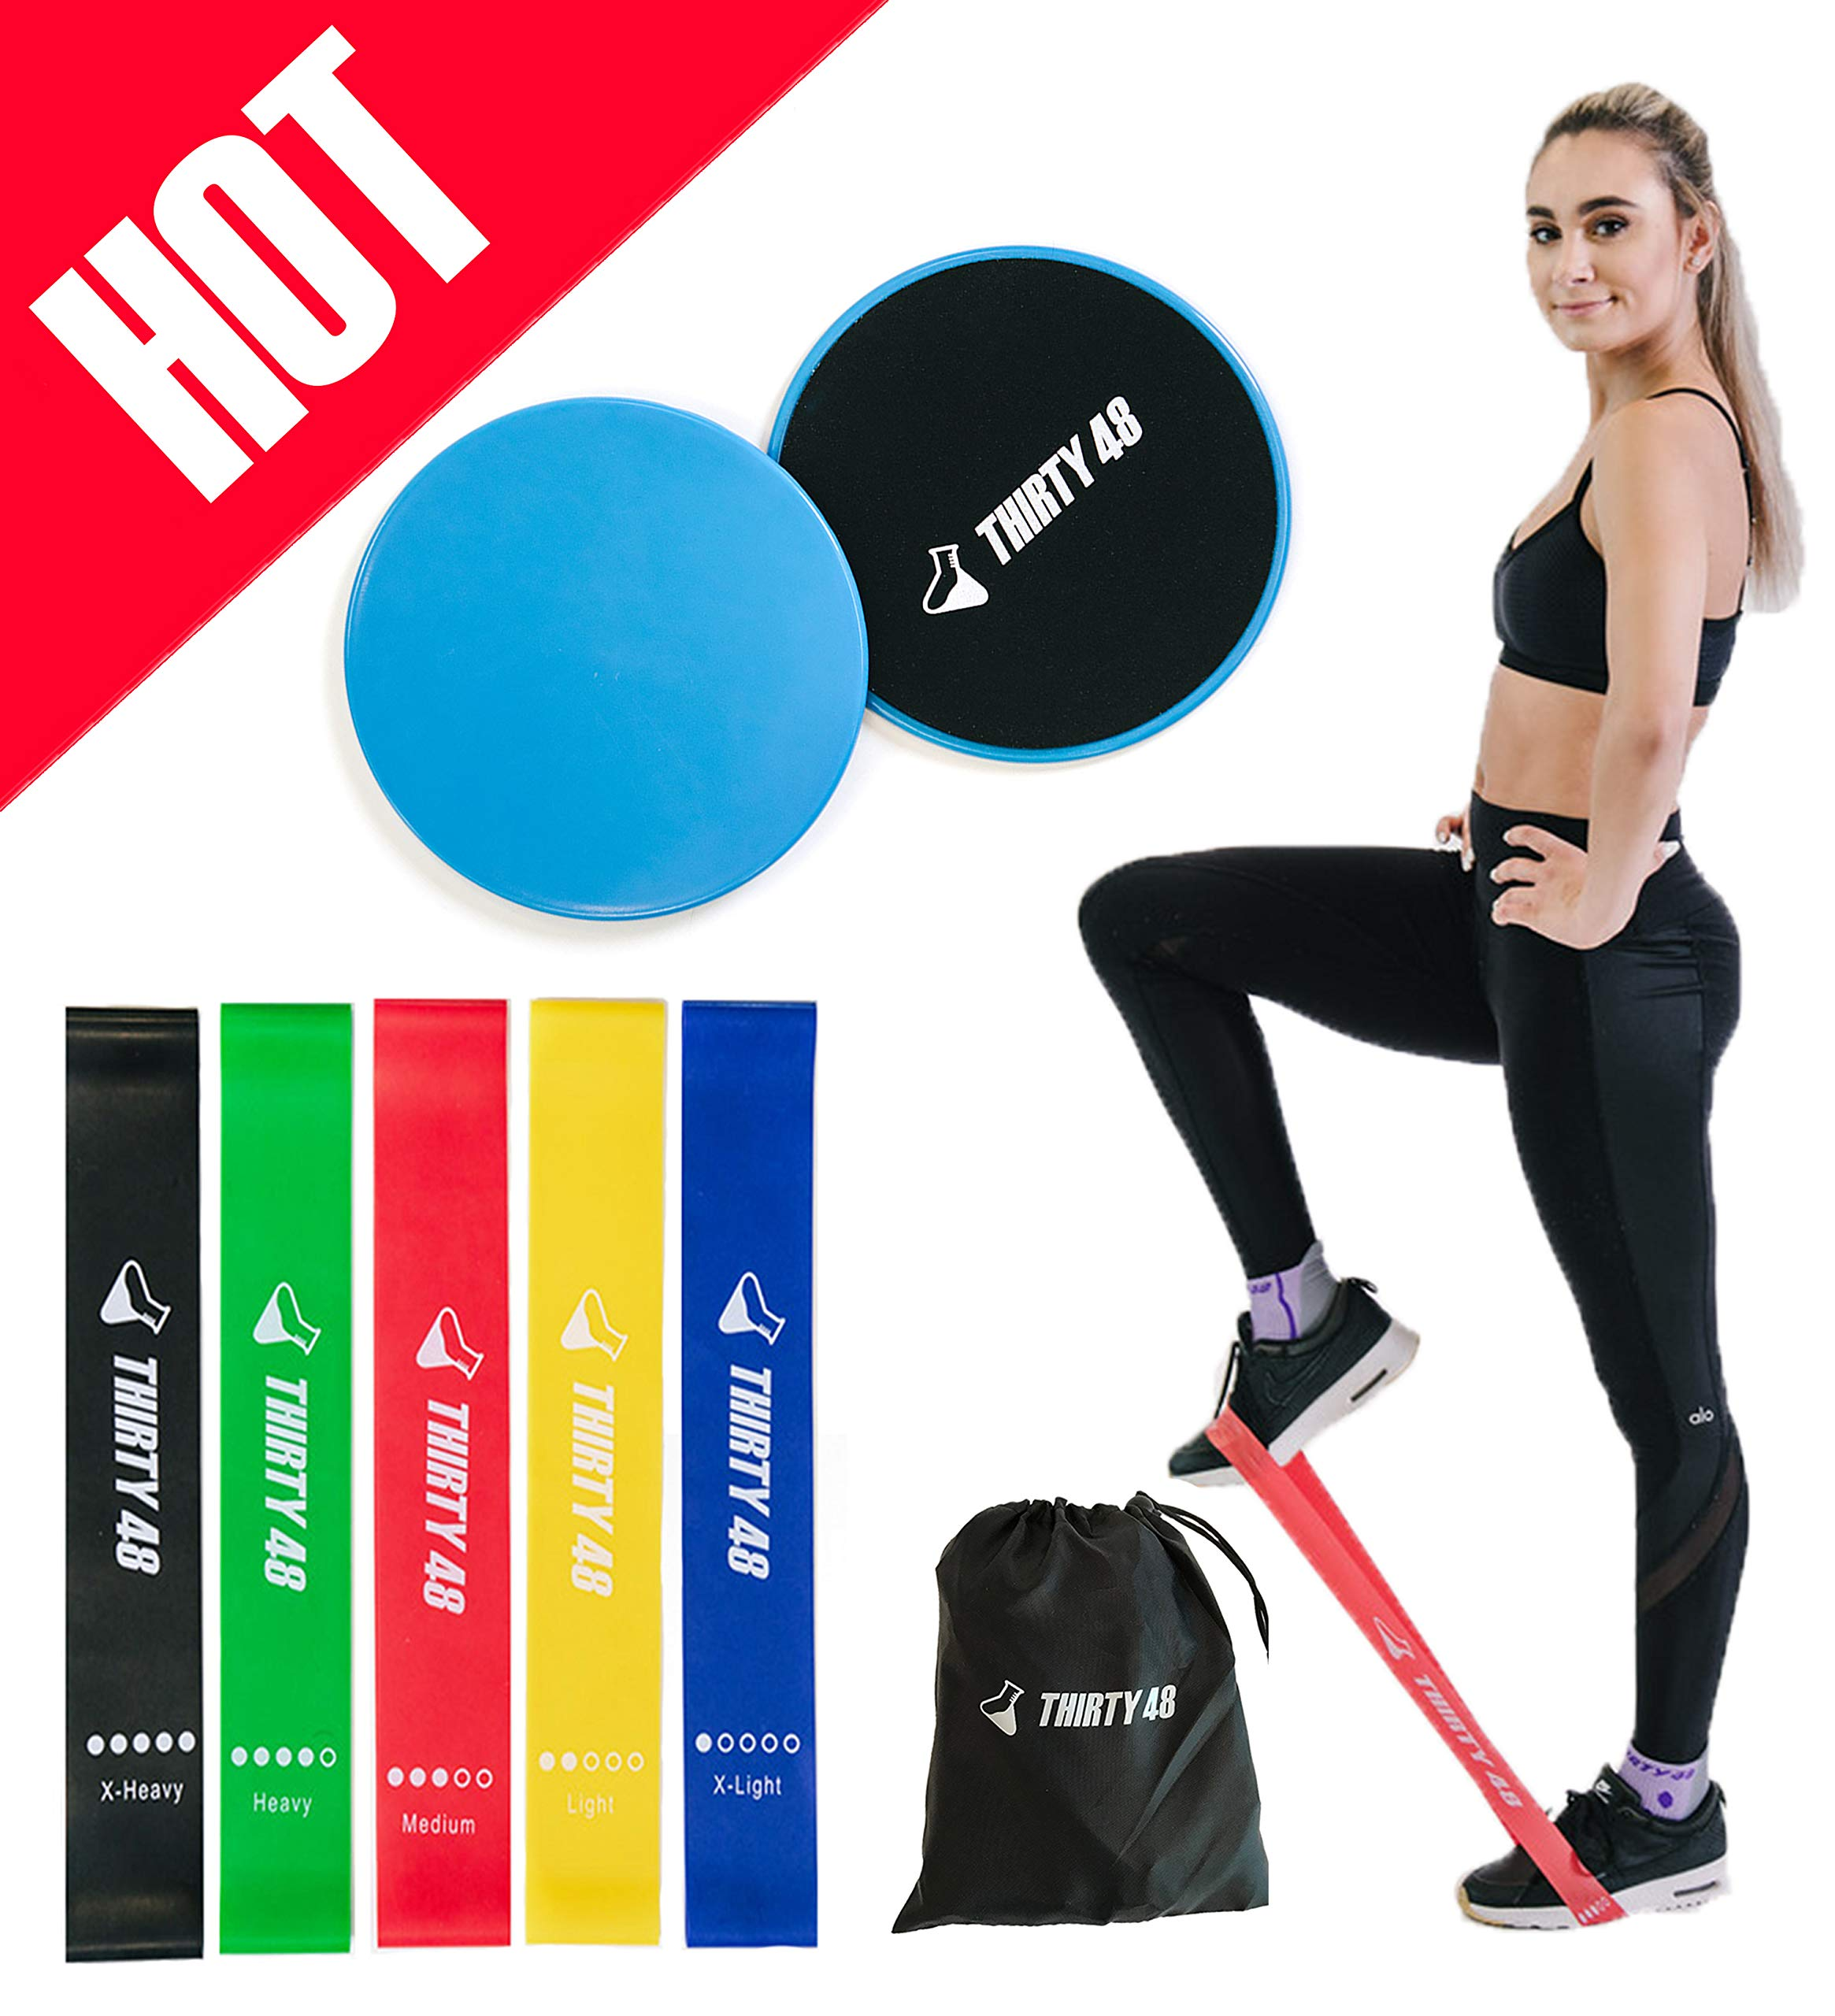 Thirty48 Gliding Discs Core Sliders and 5 Exercise Resistance Bands | Strength, Stability, and Crossfit Training for Home, Gym, Travel | User Guide & Carry Bag (Blue (Core Slider)) by Thirty48 (Image #1)